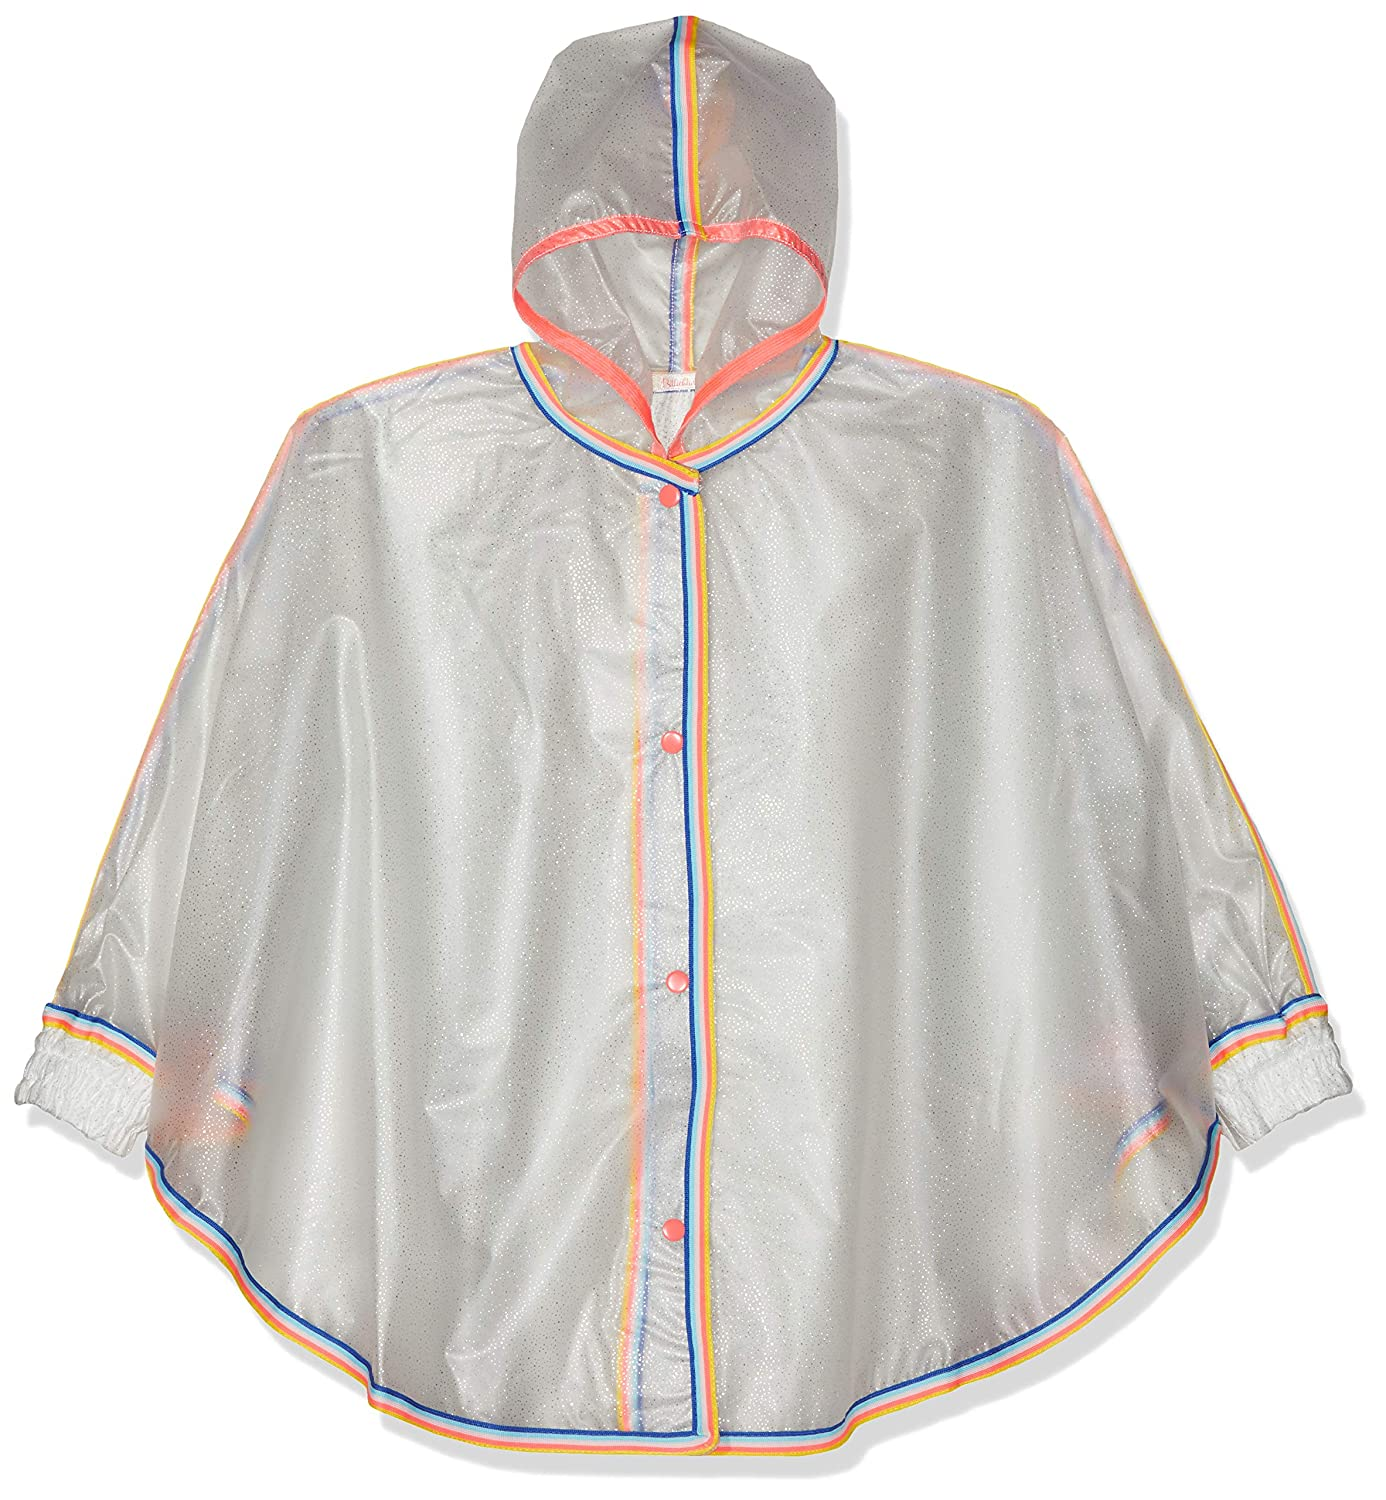 Transparent (Unique Z40) 5 ans  Billiebleush Cape, Manteau Fille